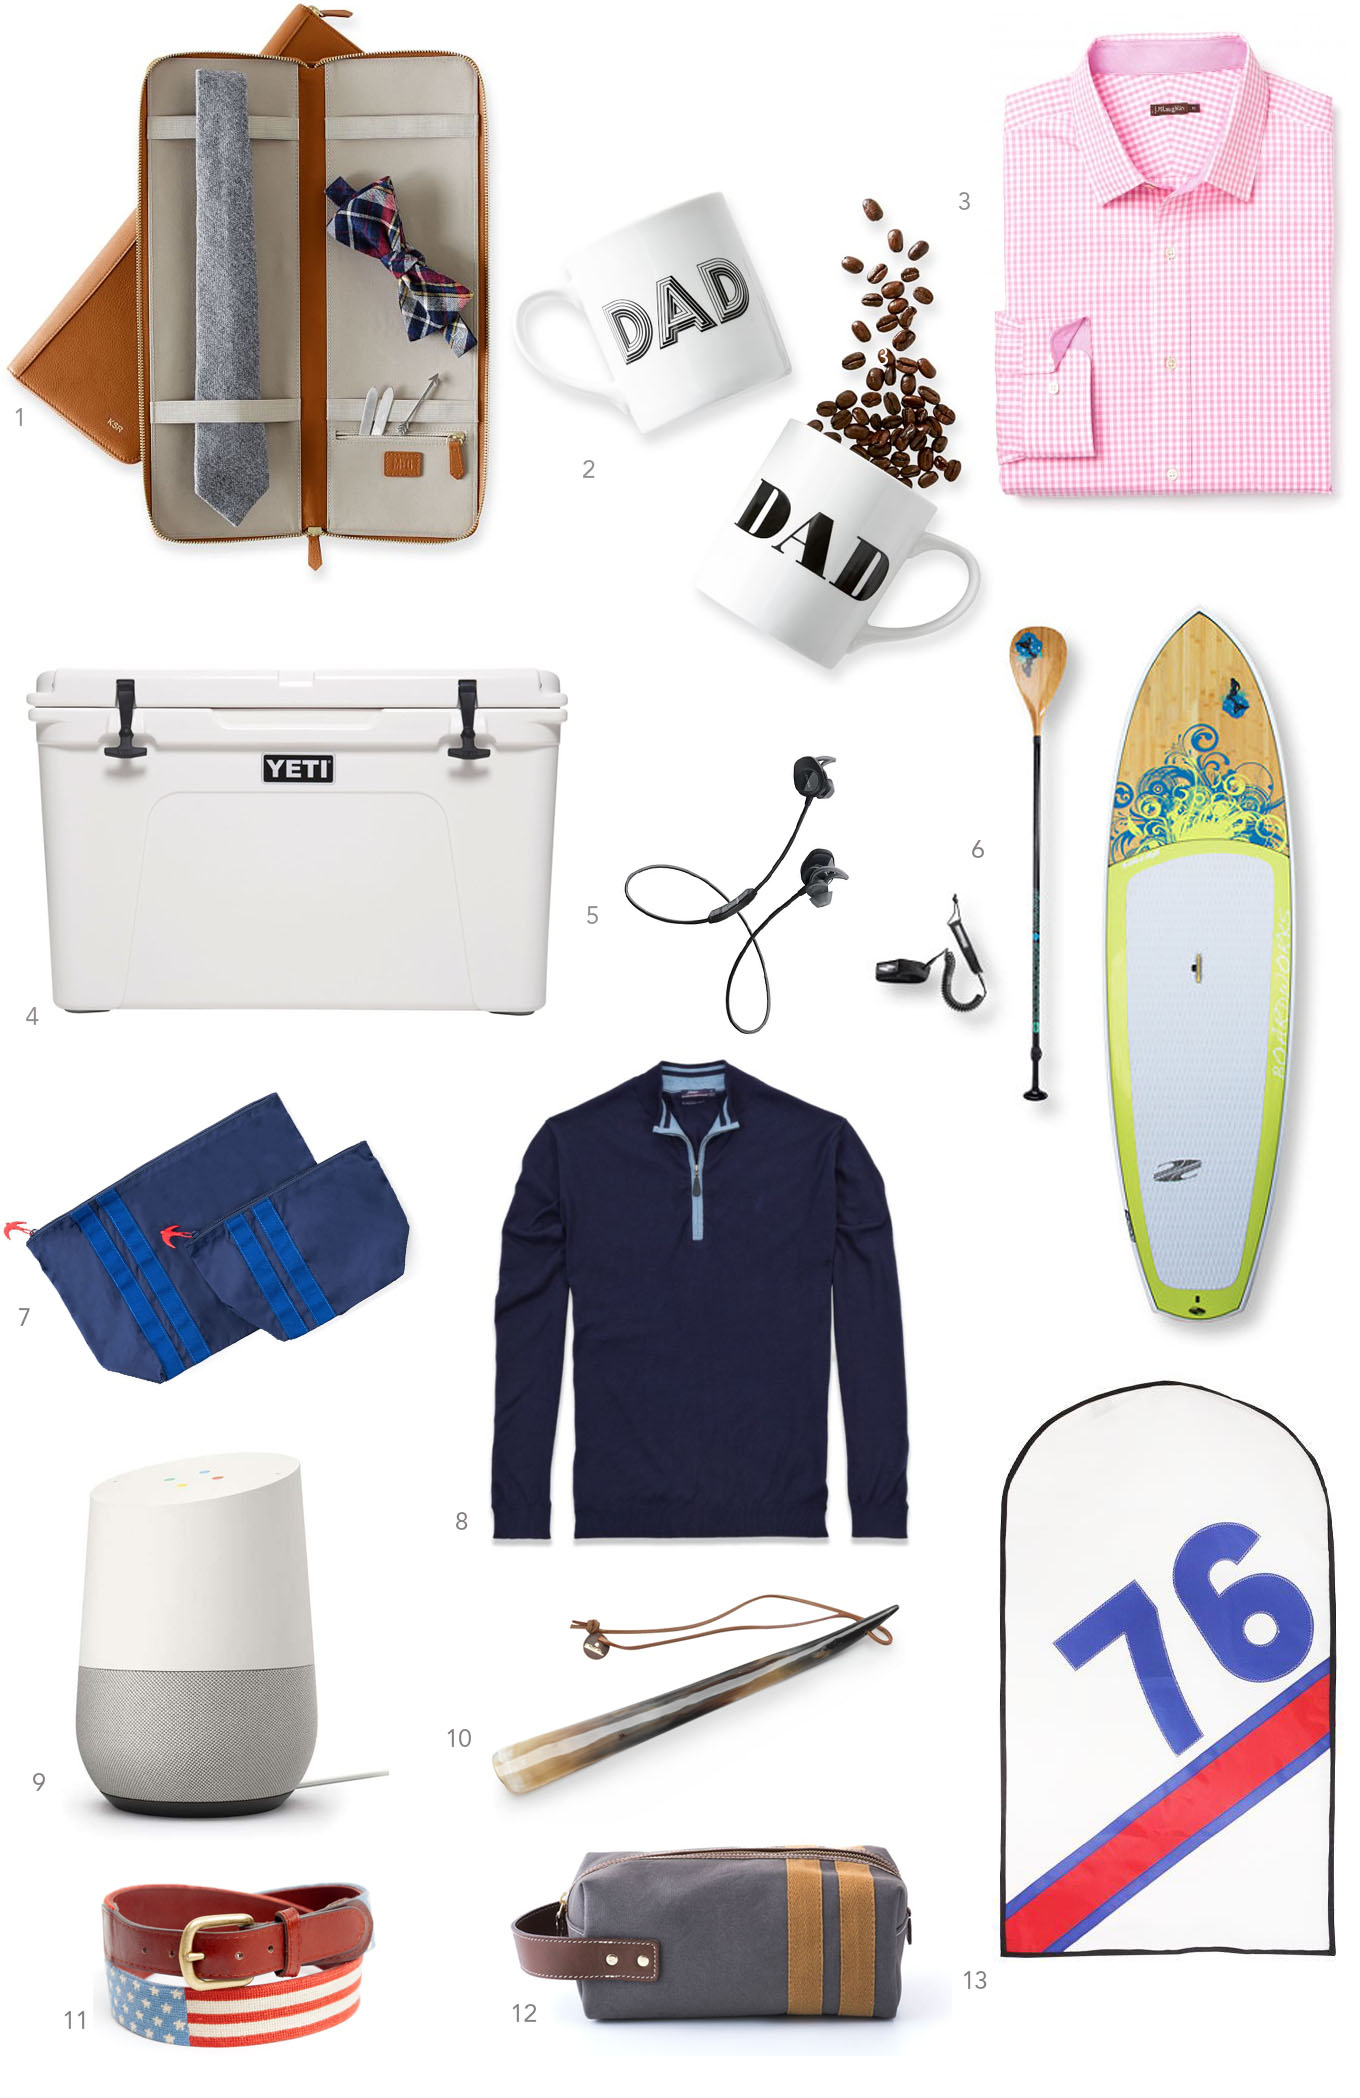 Looking for something for the Dads? Why not check out Ridgely Brode's 13 gift ideas for Fathers Day on her blog Ridgely's Radar.